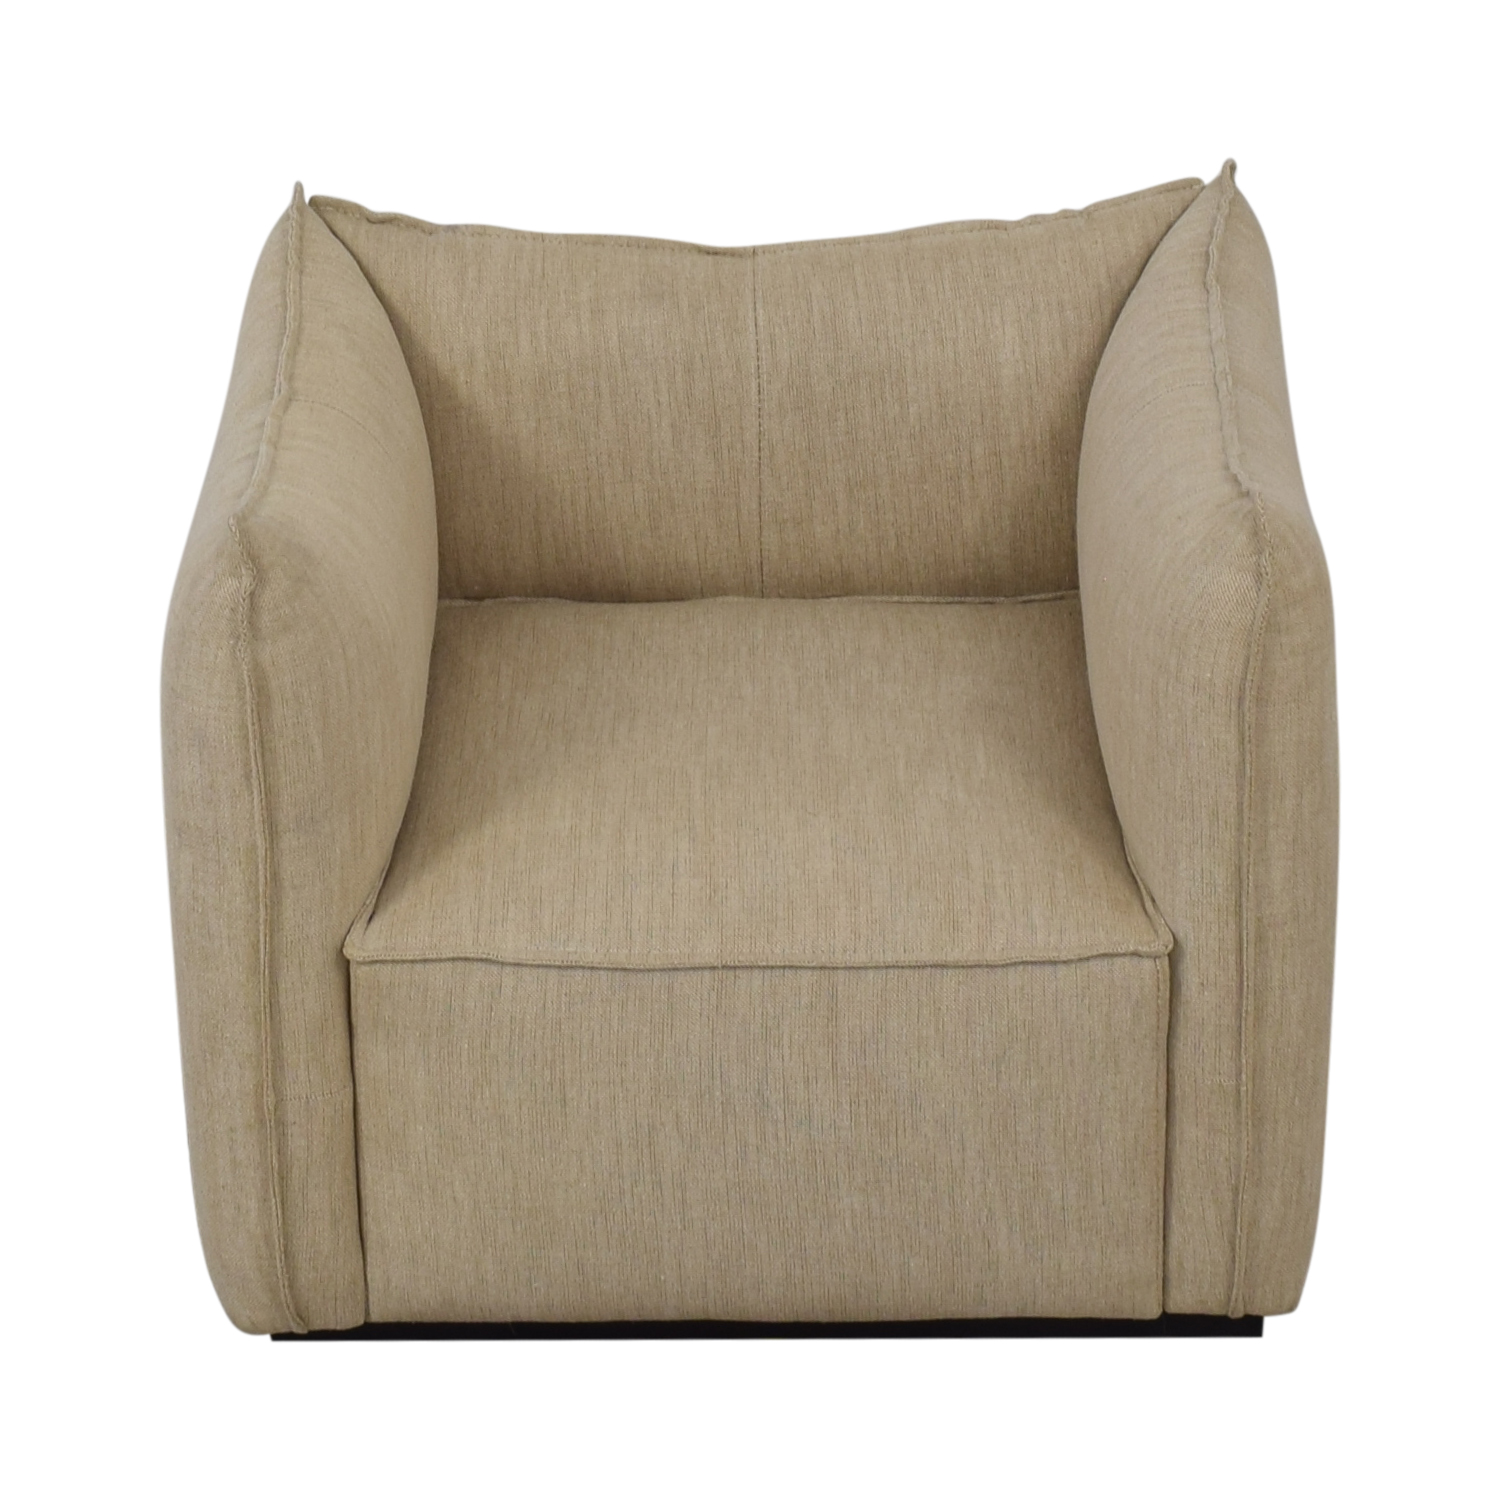 Restoration Hardware Restoration Hardware Peyton Arm Chair nj